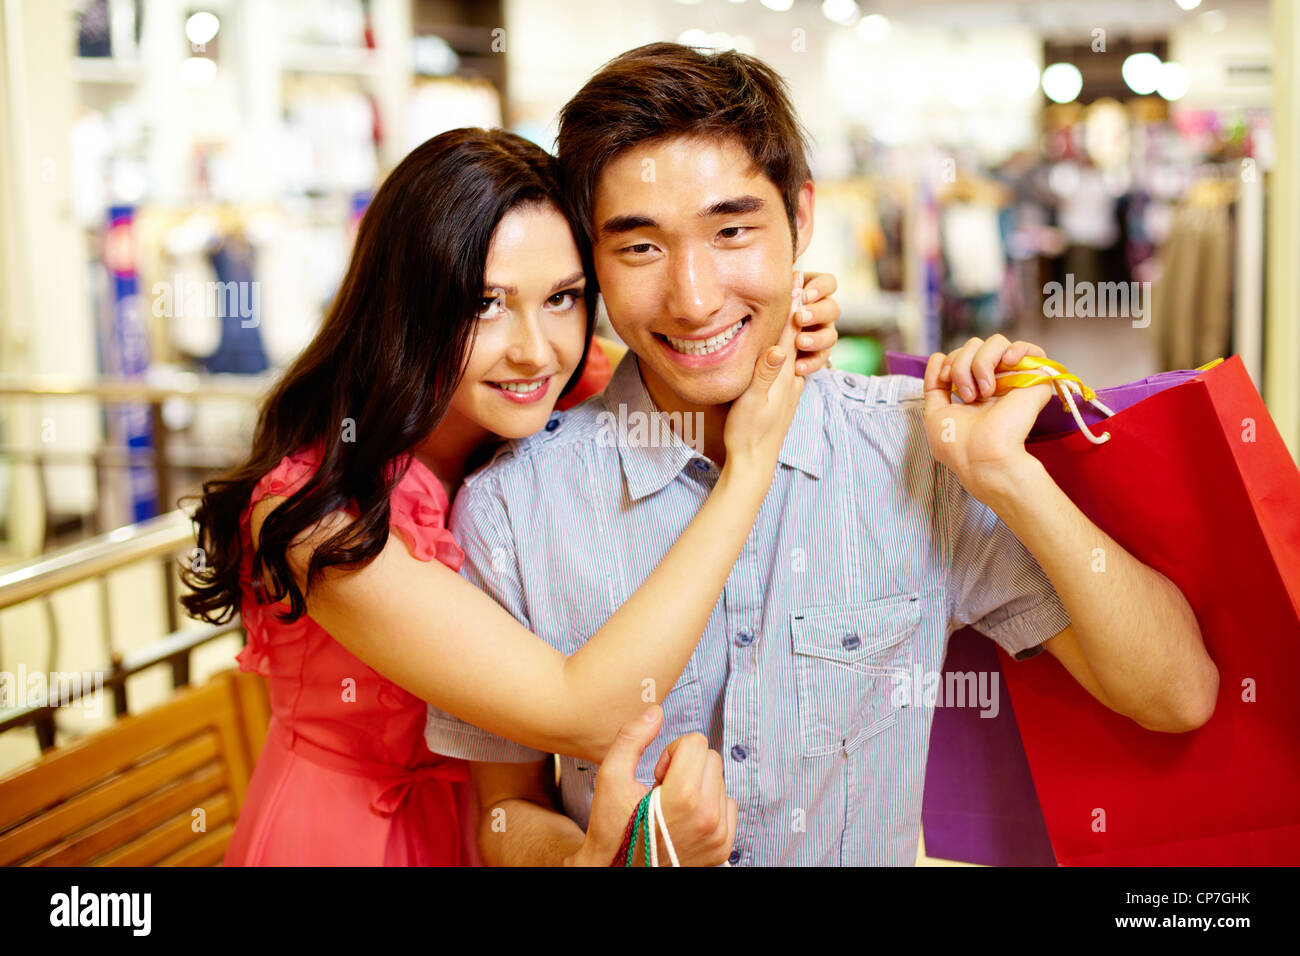 Beautiful girl hugging tenderly her boyfriend with shopping bags - Stock Image